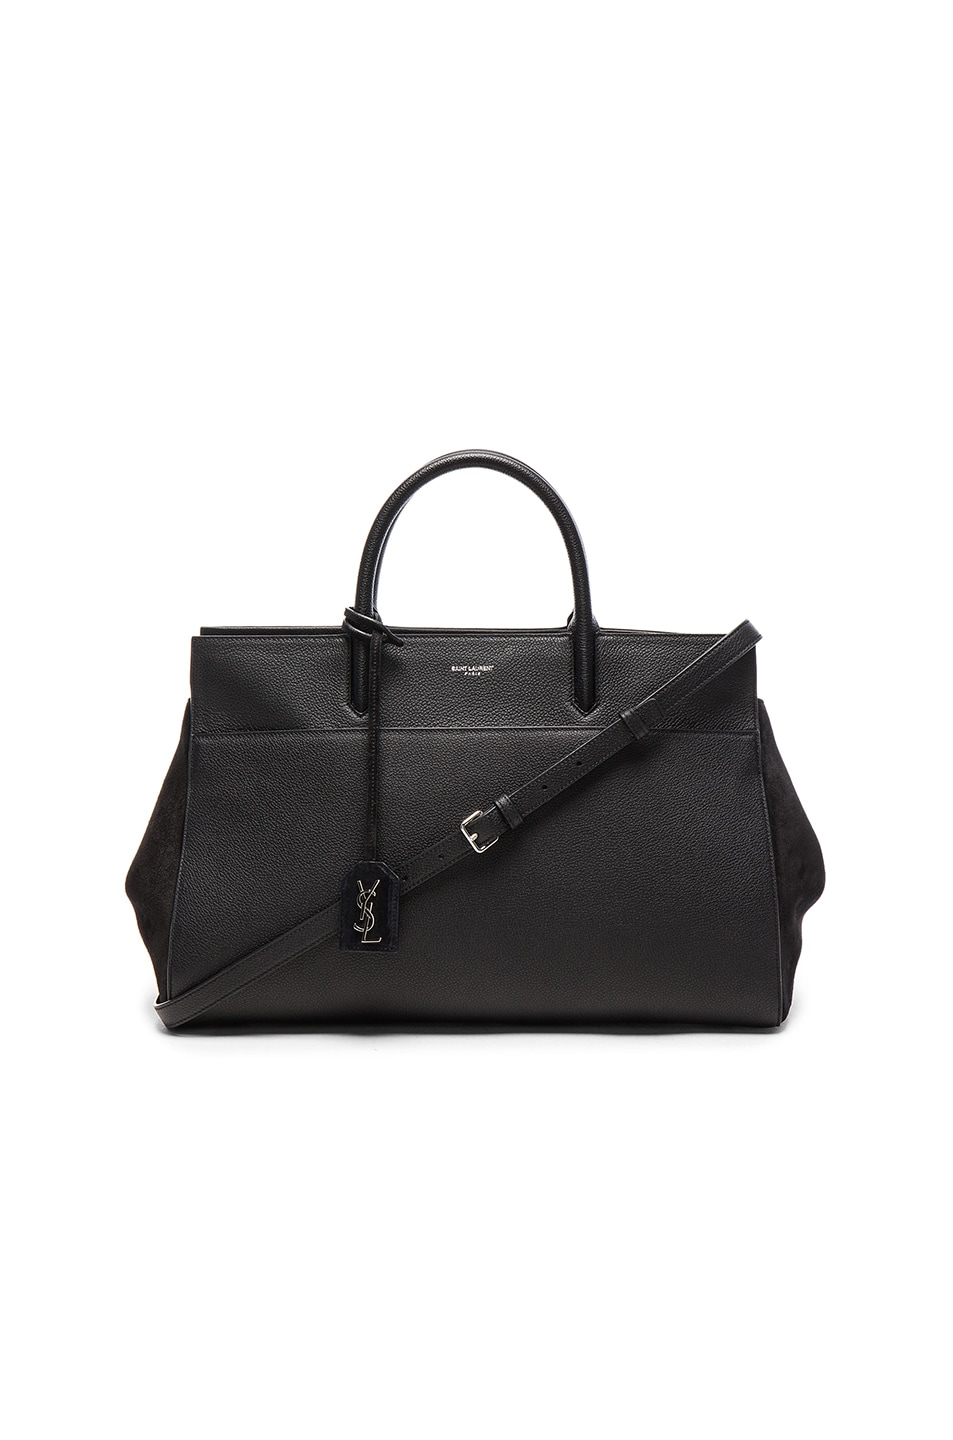 a115a64bf5 Image 1 of Saint Laurent Rive Gauche Medium Cabas in Black